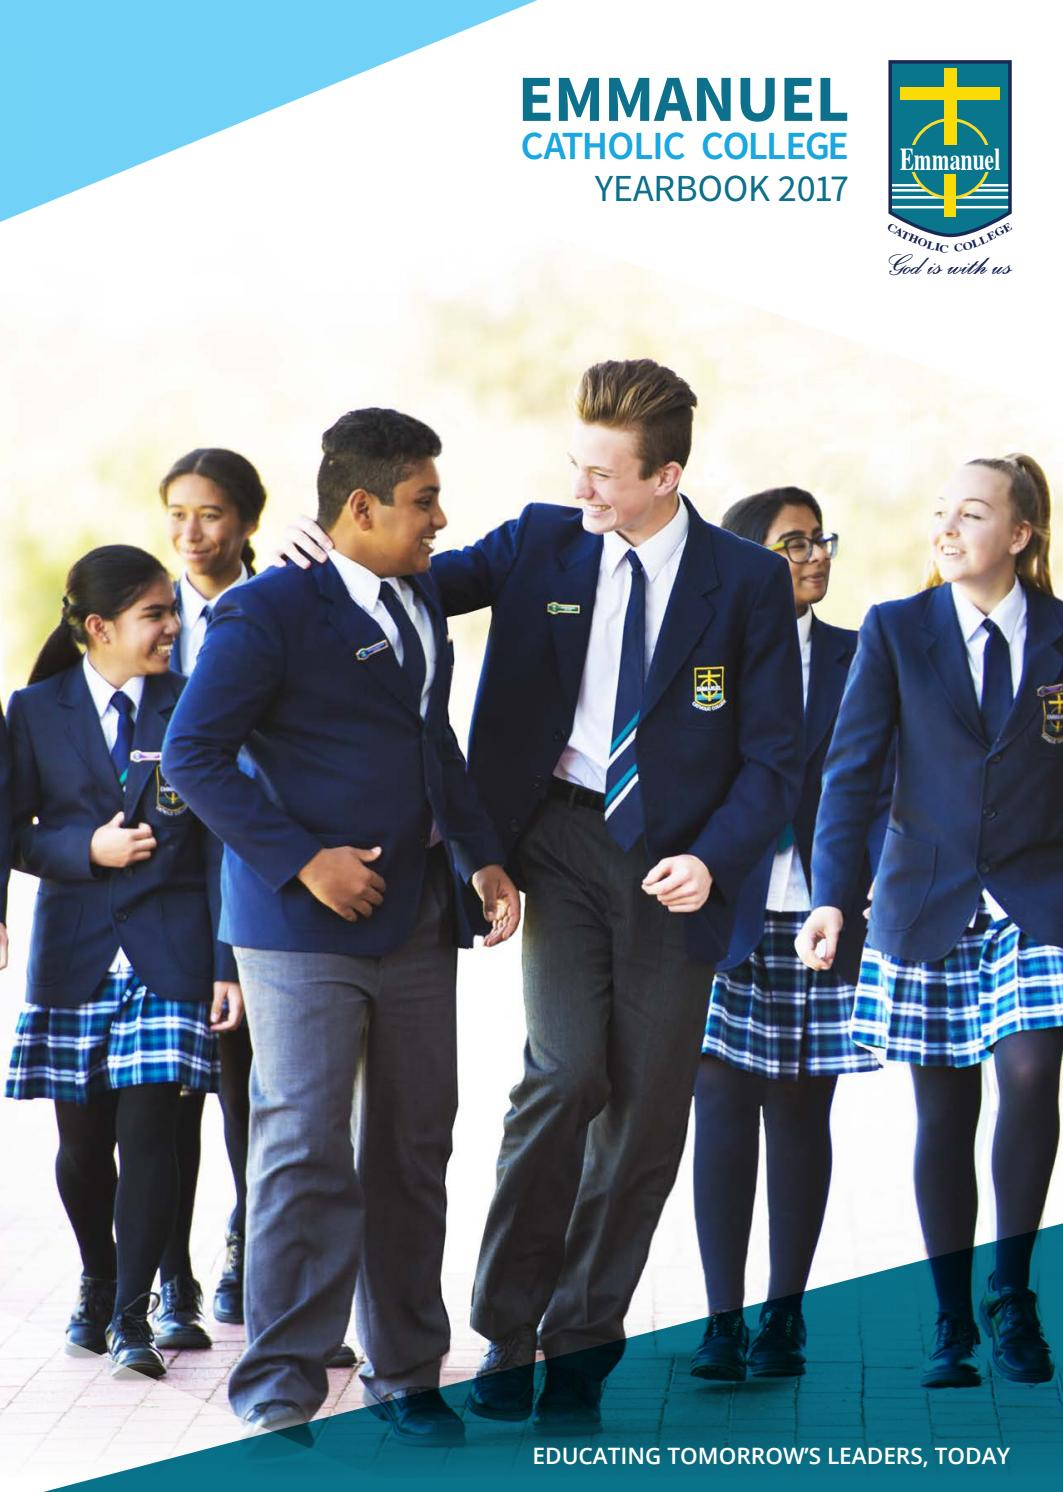 Emmanuel Catholic College Yearbook by emmanuel1152 - issuu